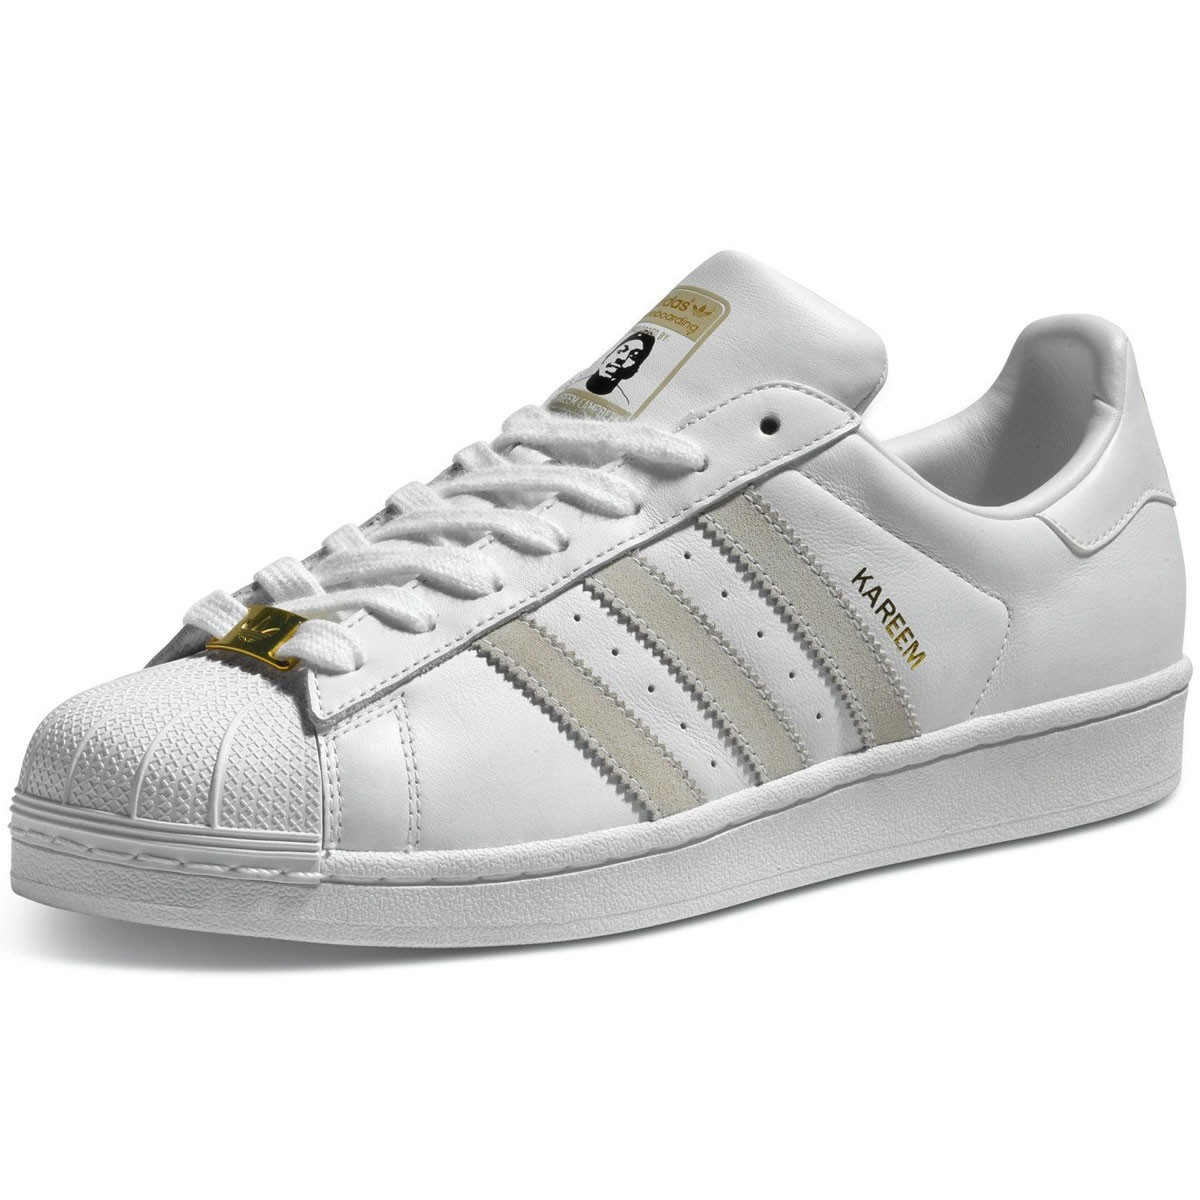 adidas shoes superstar white. adidas superstar rt shoes - white 4.0 s